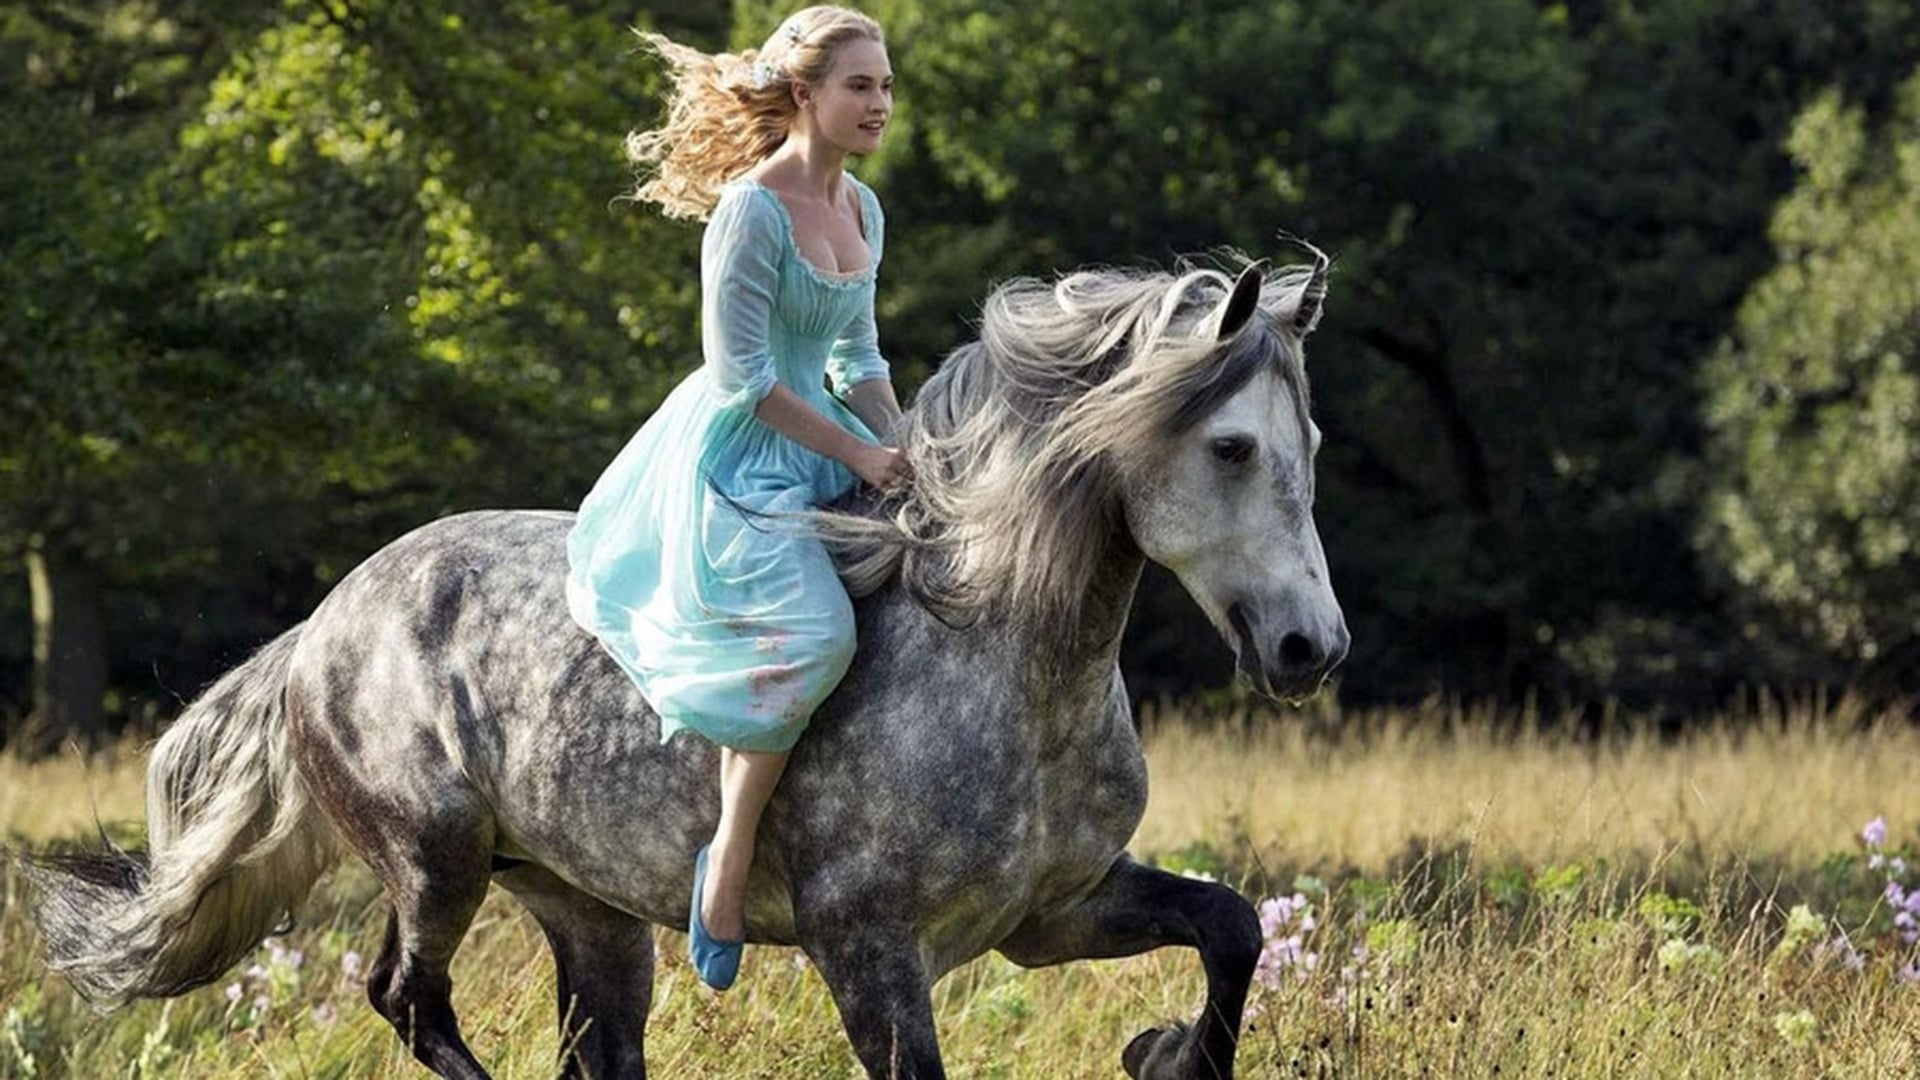 Girl Riding Horse Wallpaper Lily James Wallpapers Hd Free Download